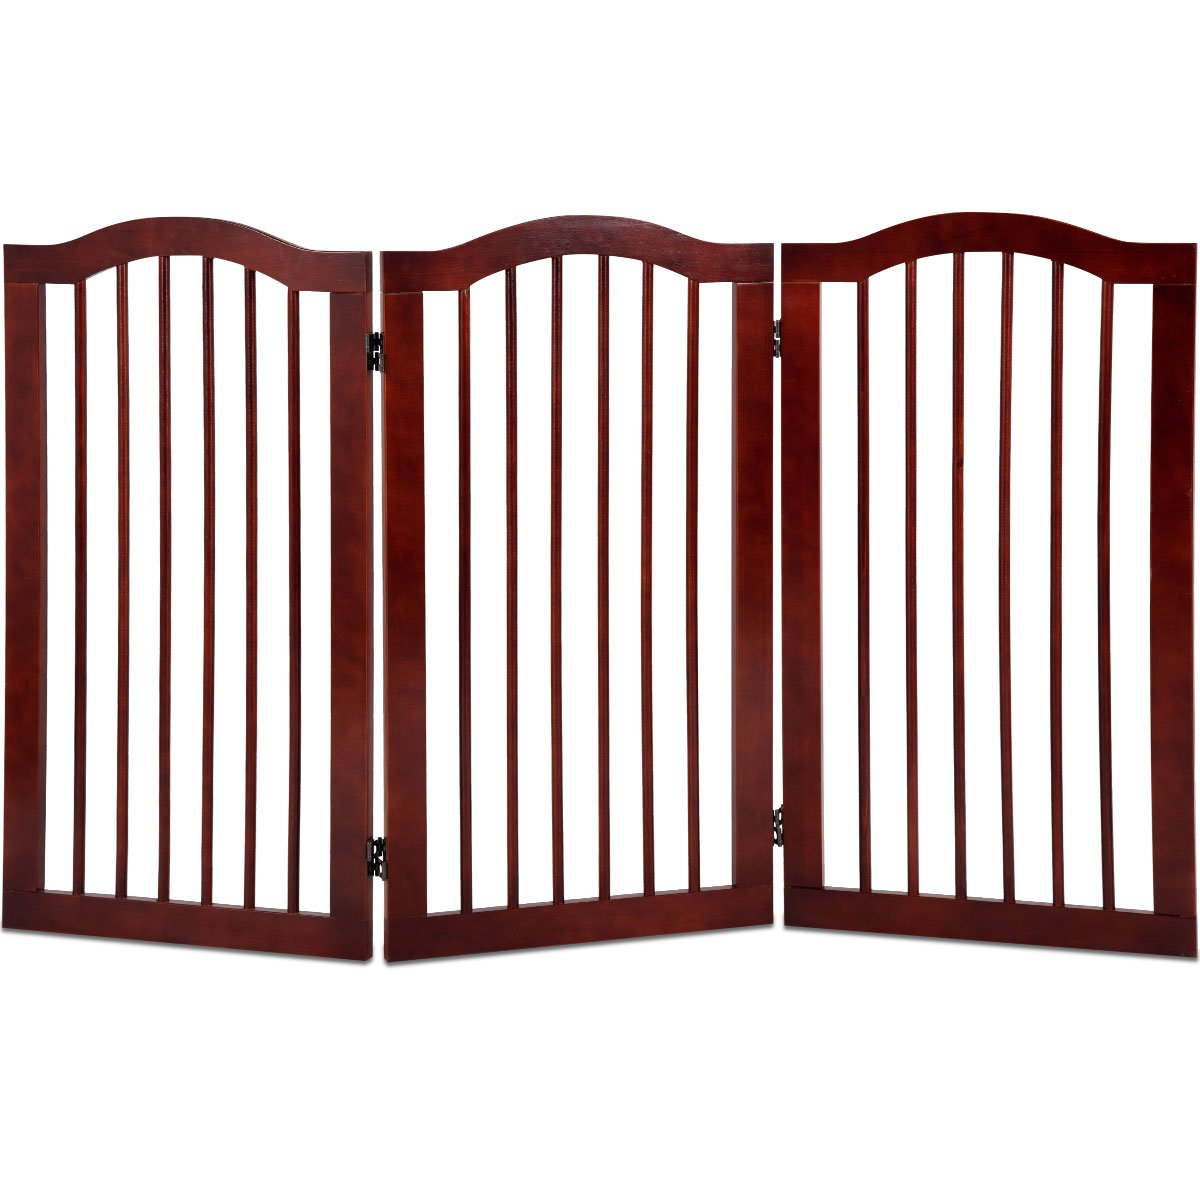 3 Panel 91CM Height GYMAX. Folding 3 4 Panel Pet Gate Dog Fence Freestanding Safety Guard Pet Door Barrier Indoor 61cm 91cm Height (3 Panel 91CM Height)